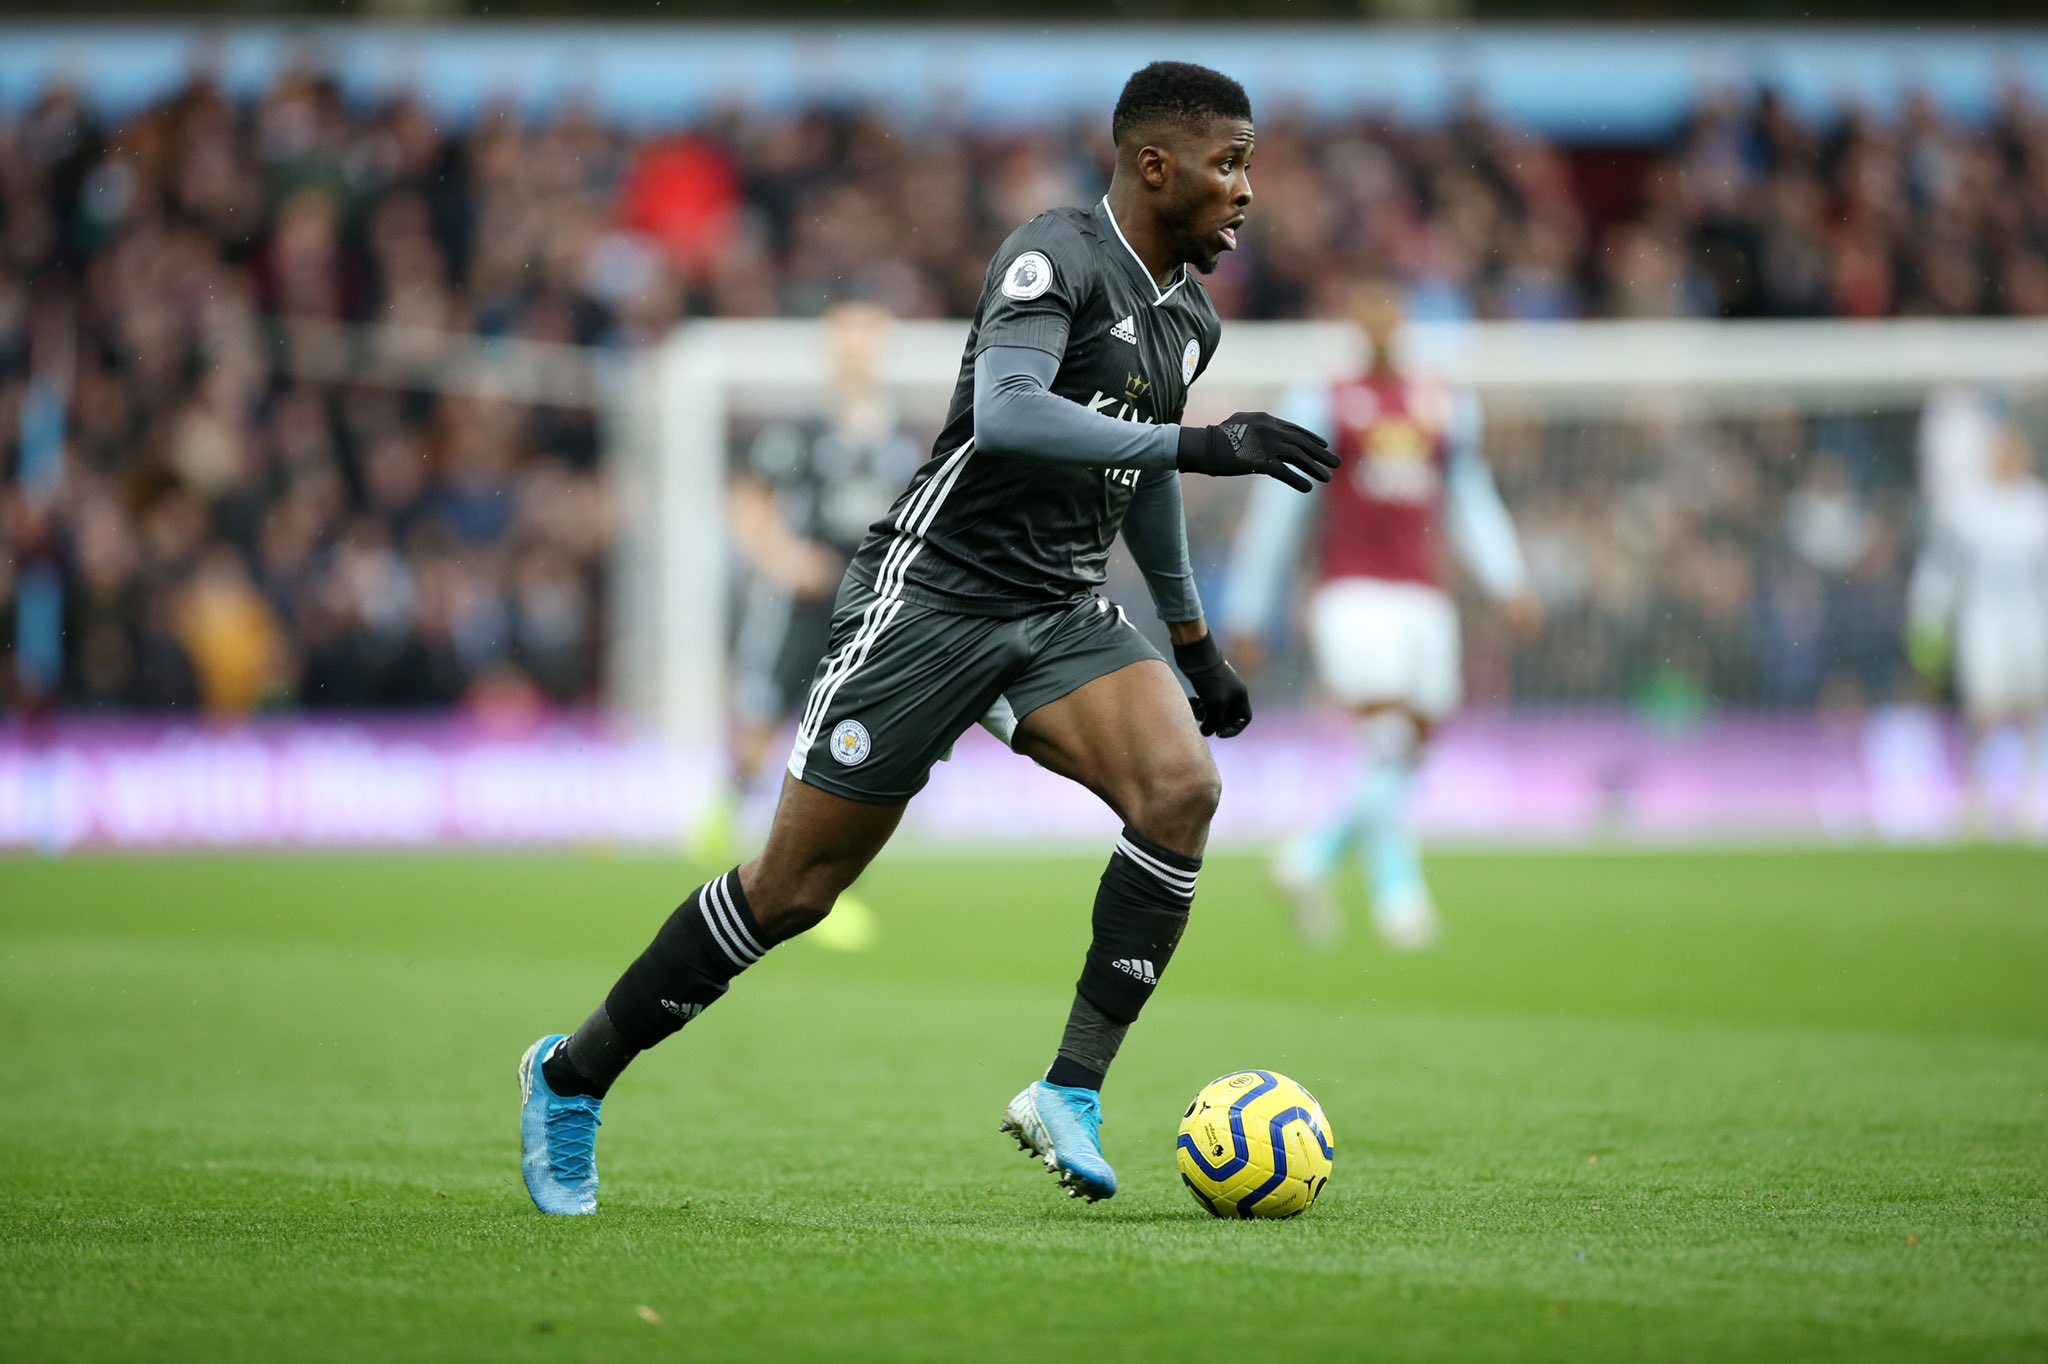 IHEANACHO SETS FOXES ON THE WAY TO VICTORY